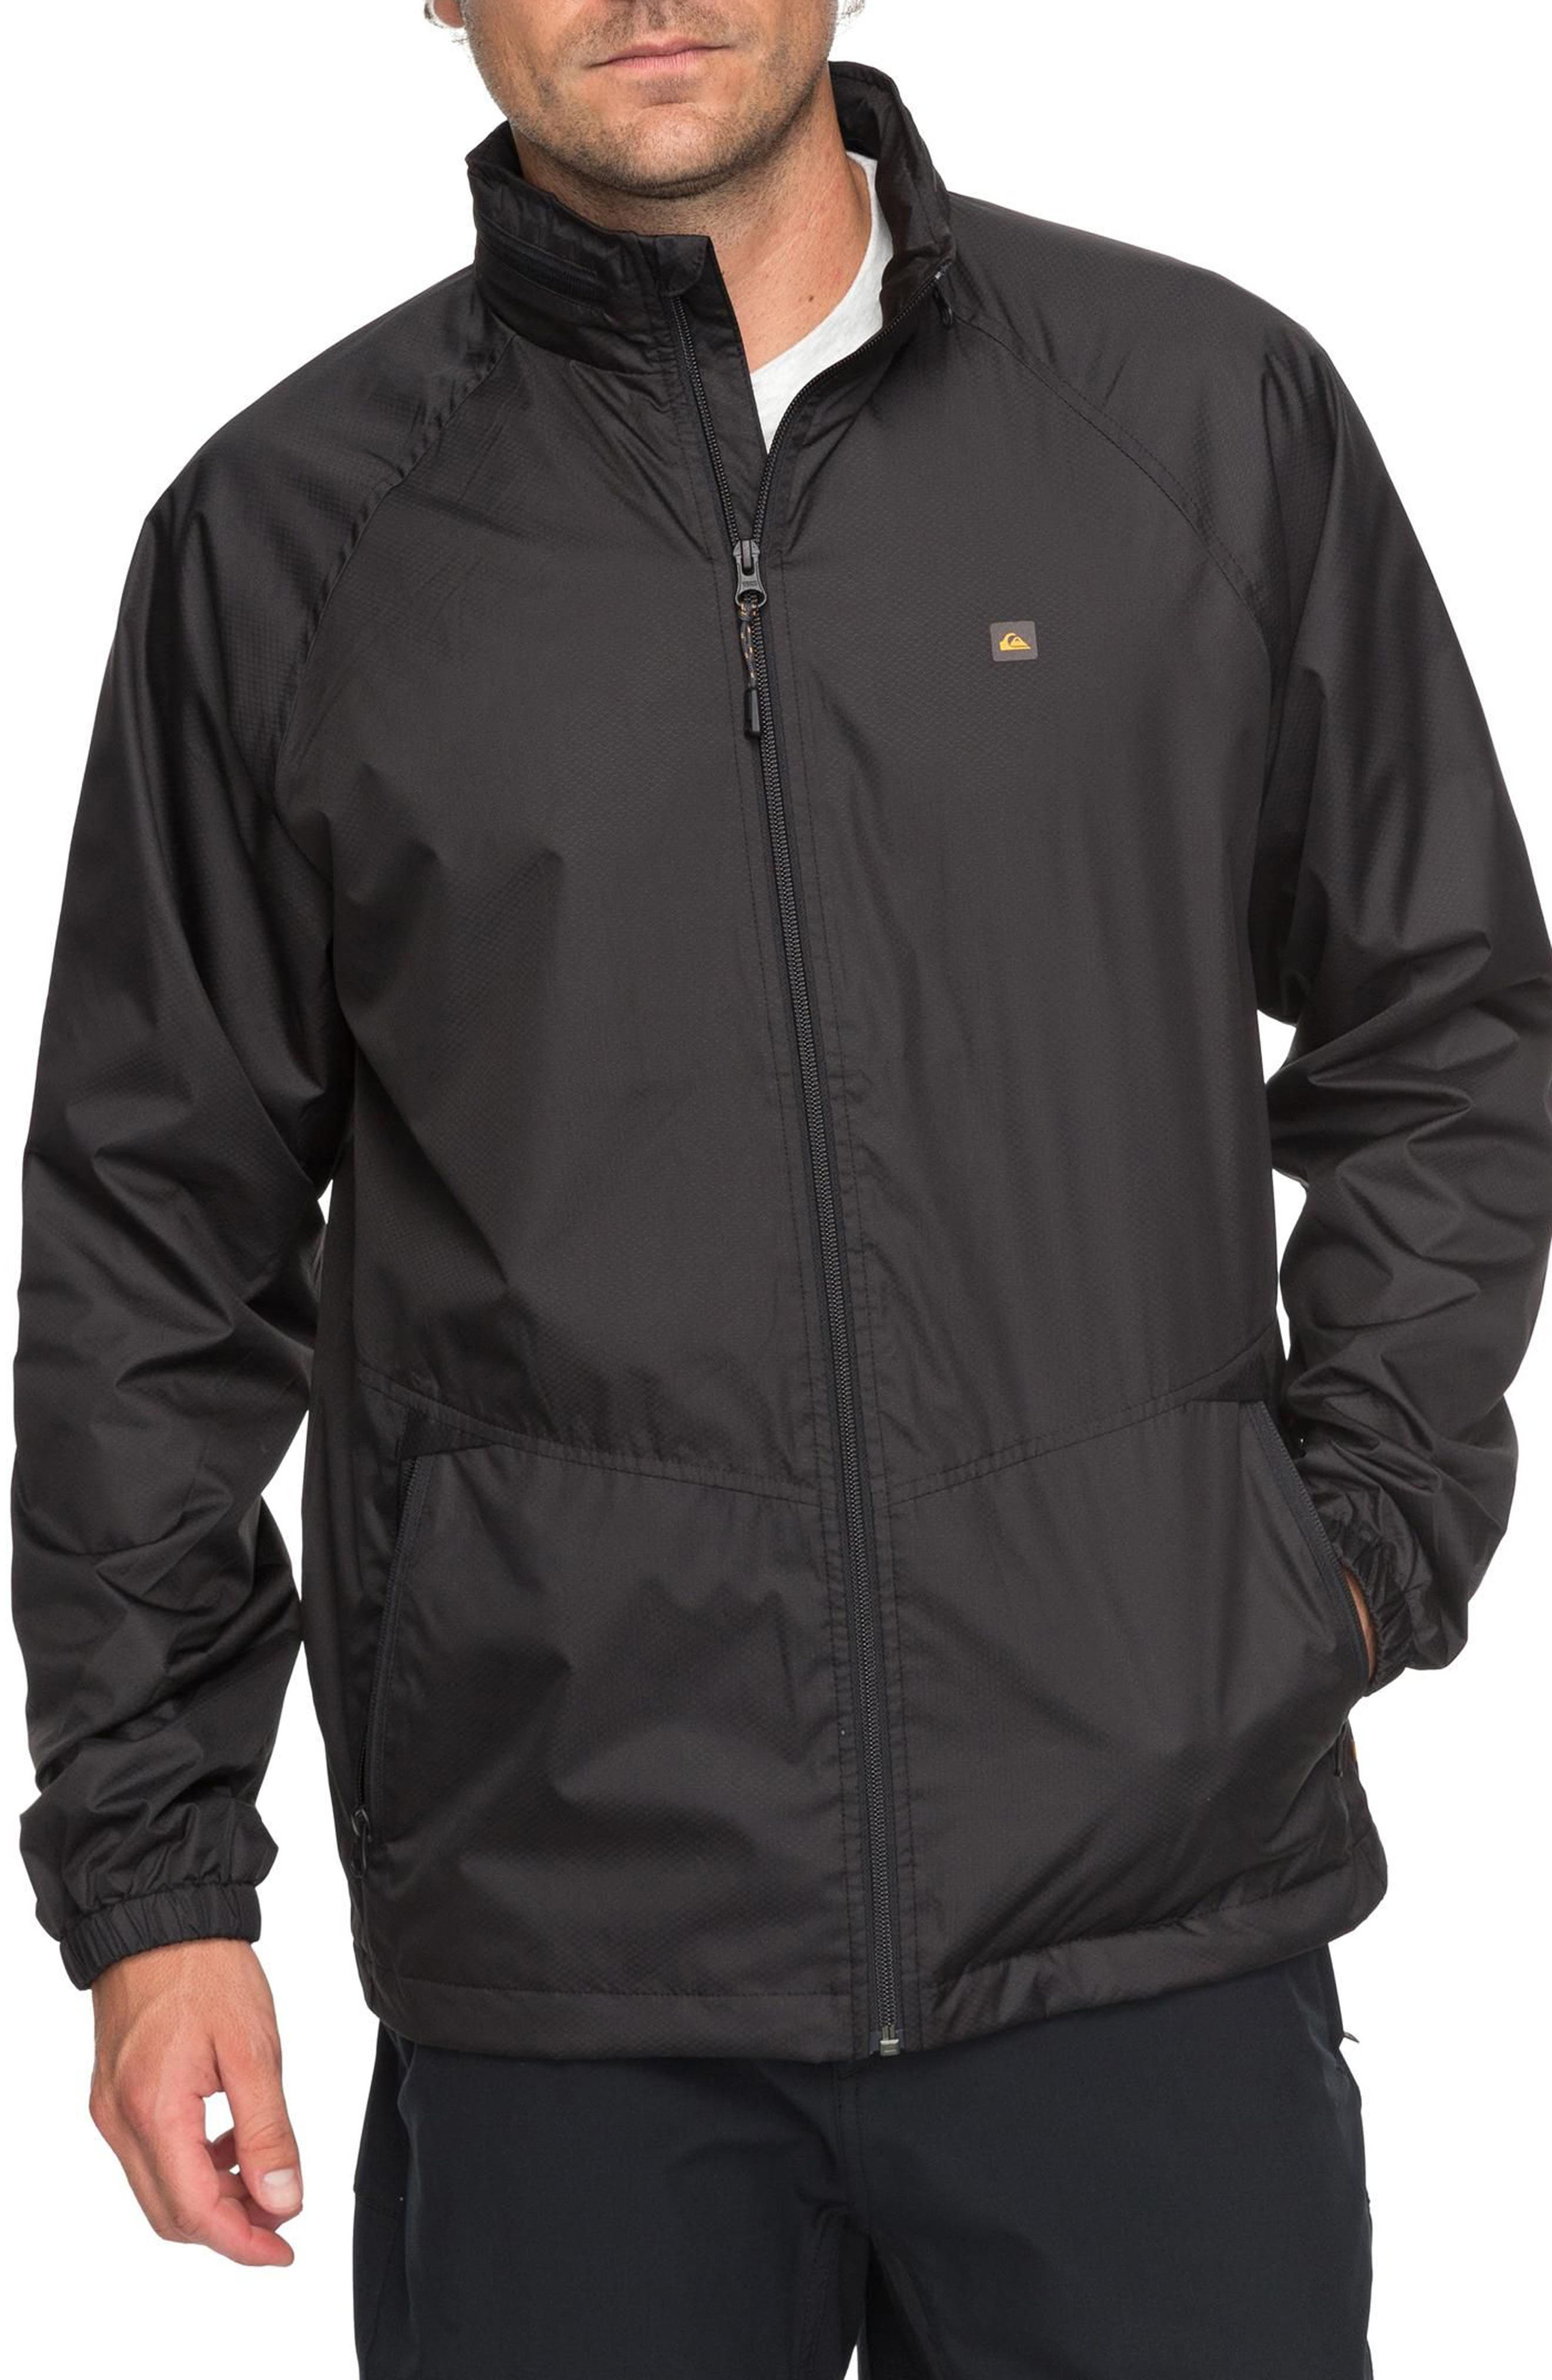 Shell Shock Water Repellent Windbreaker,                         Main,                         color, 002